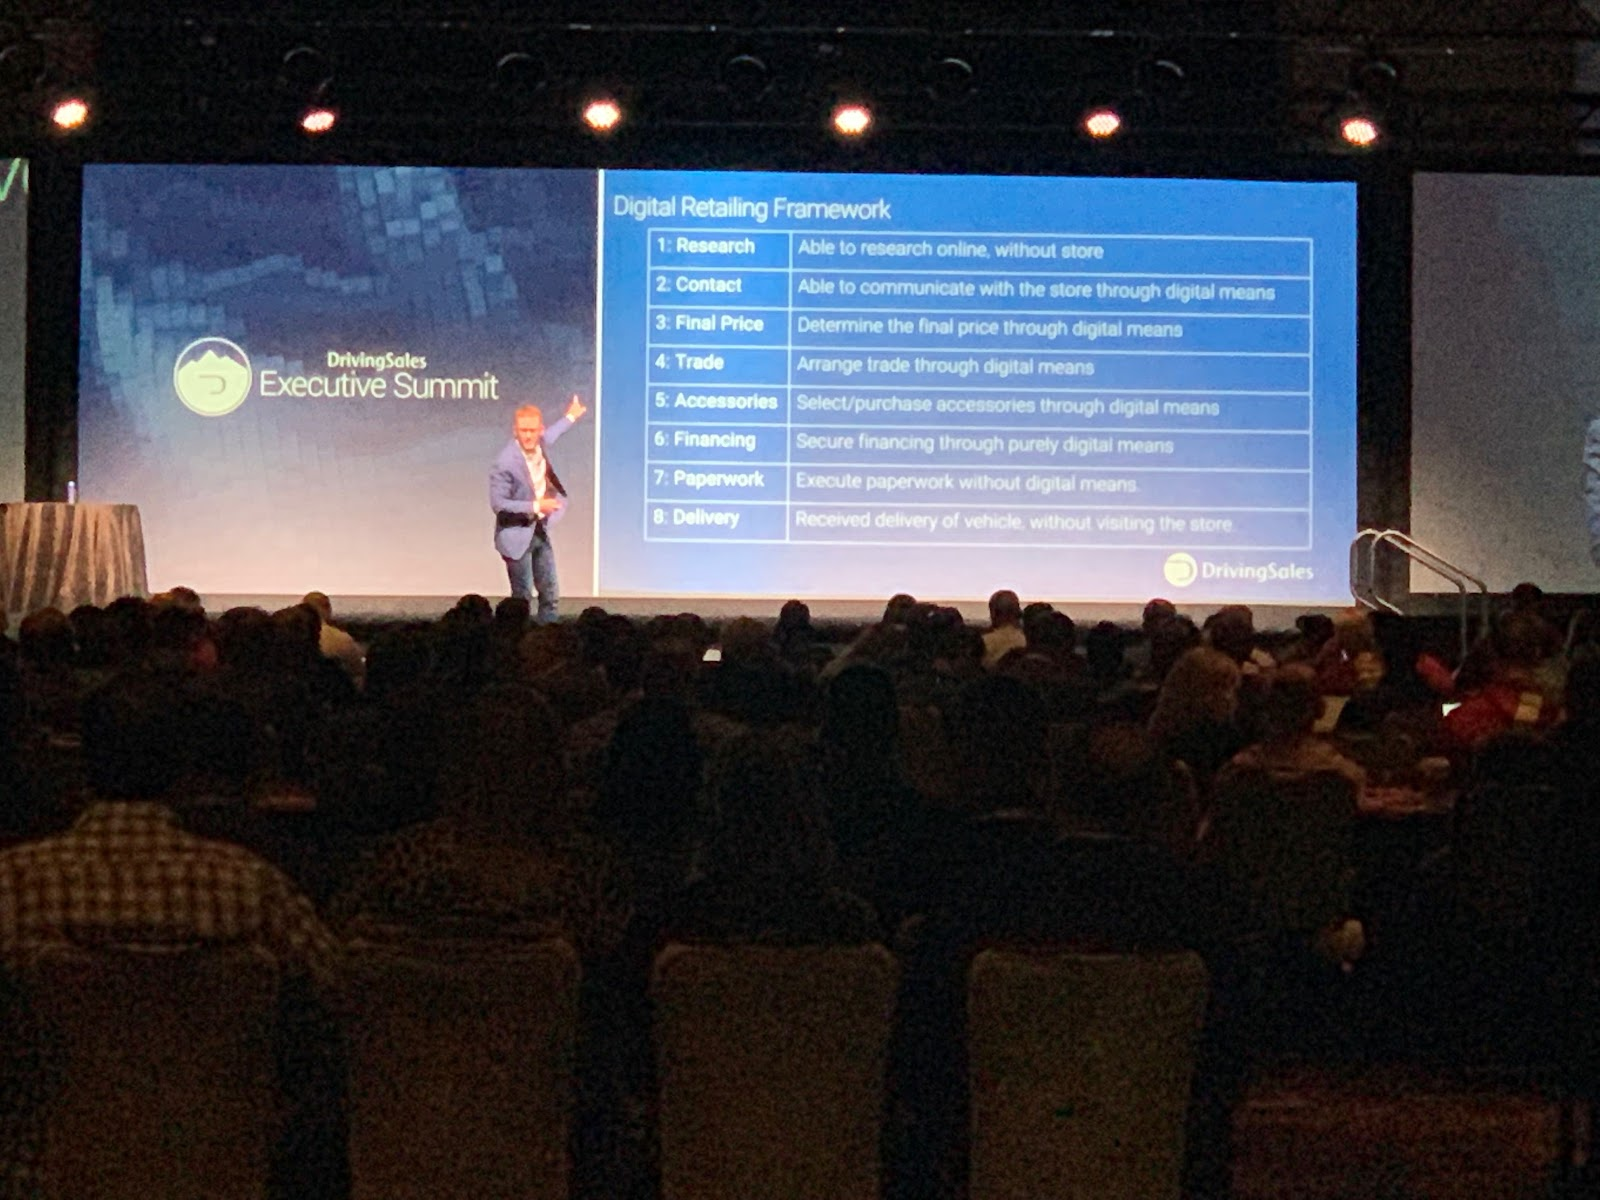 Key Takeaways from DrivingSales Executive Summit 2019 -